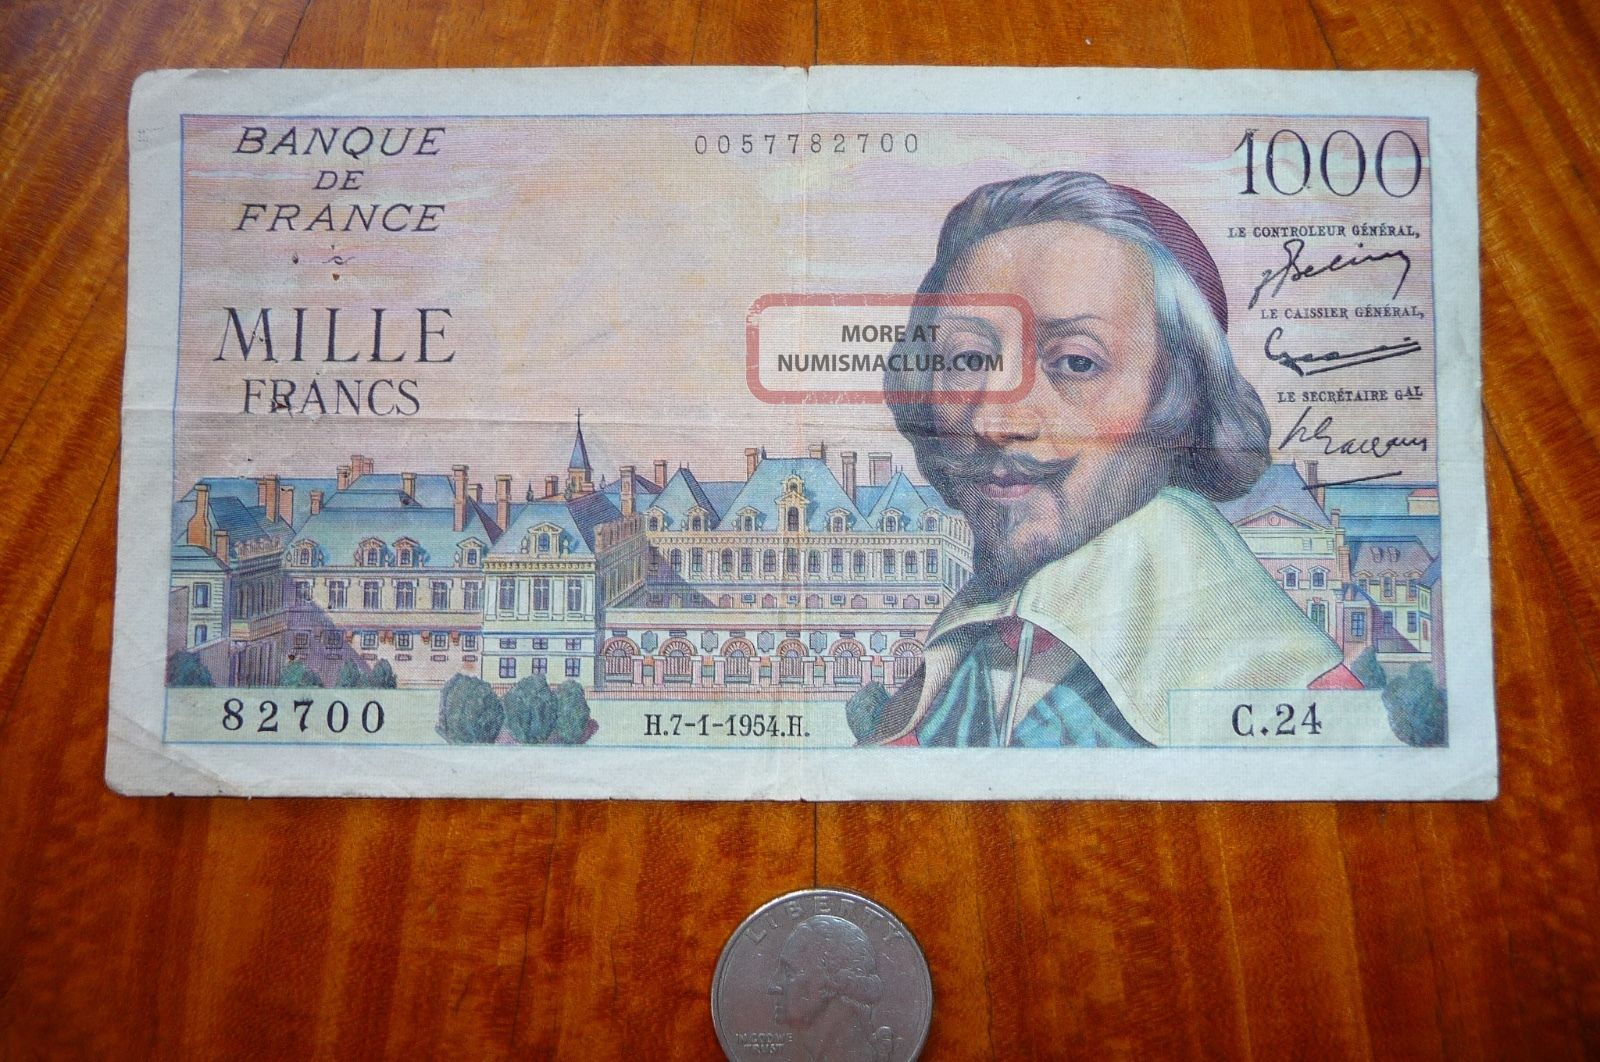 1000 Francs Bank Note France 1954 Very Good Europe photo